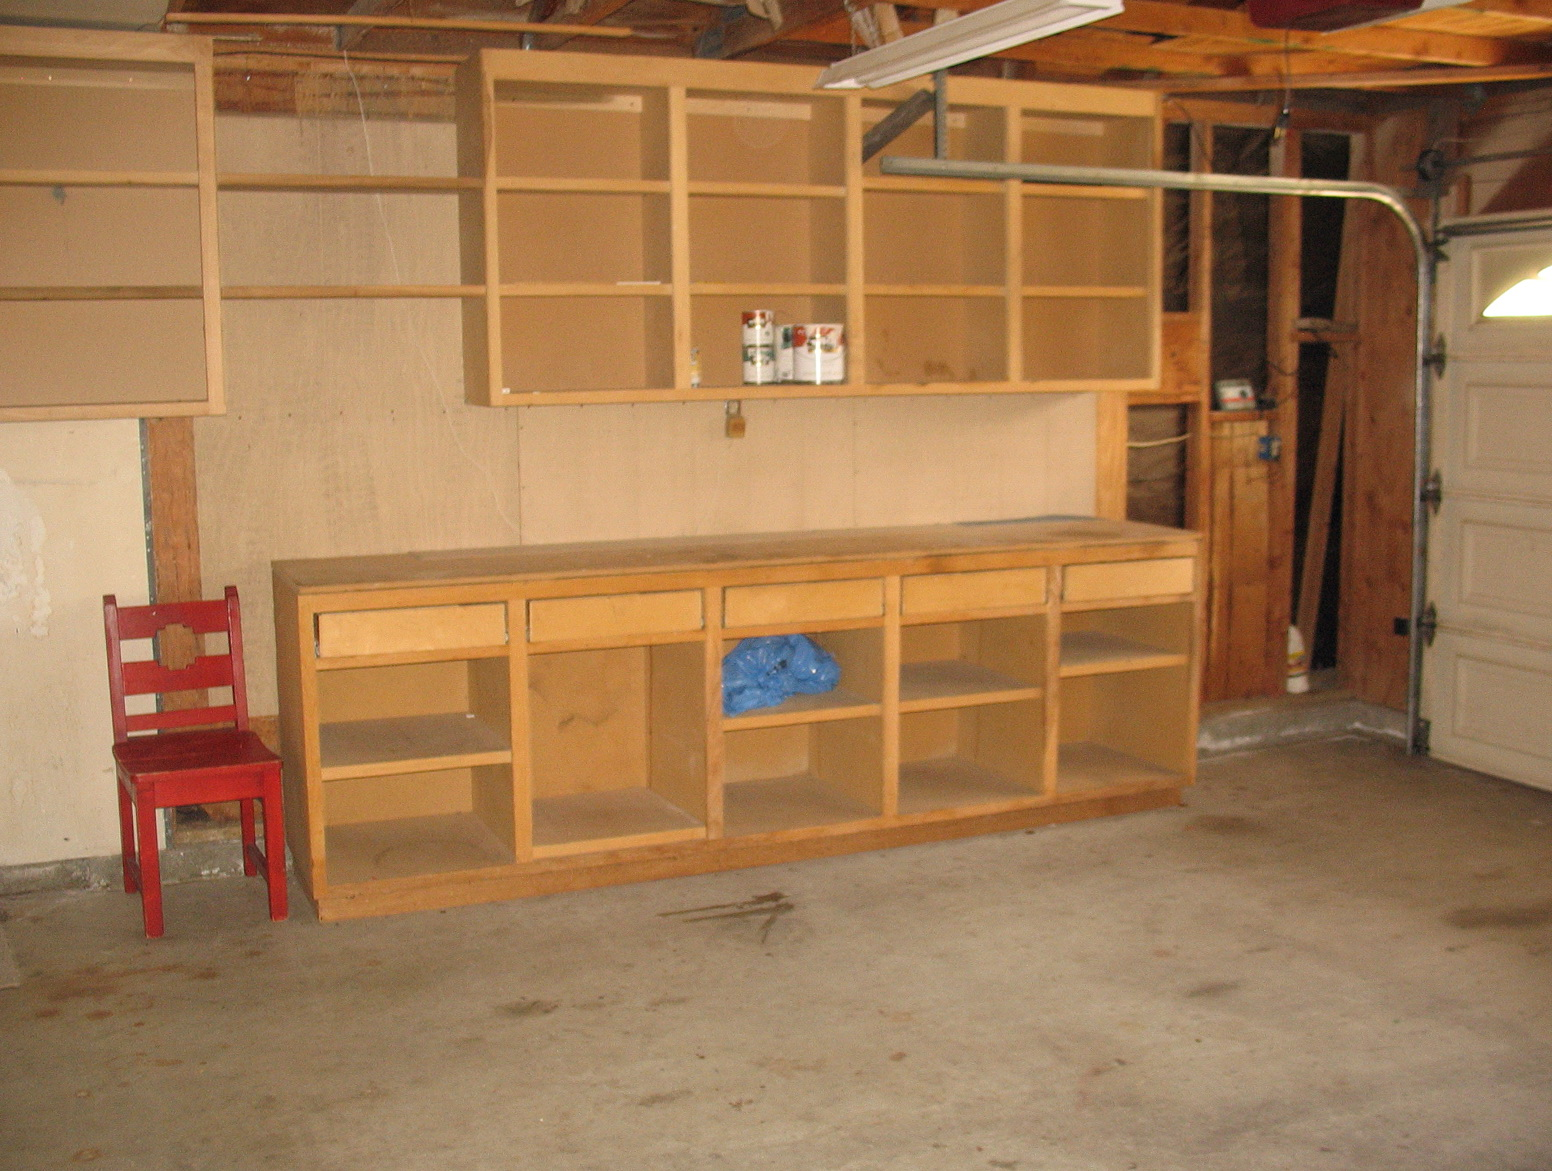 Garage Work Bench And Cabinets Home Design Ideas